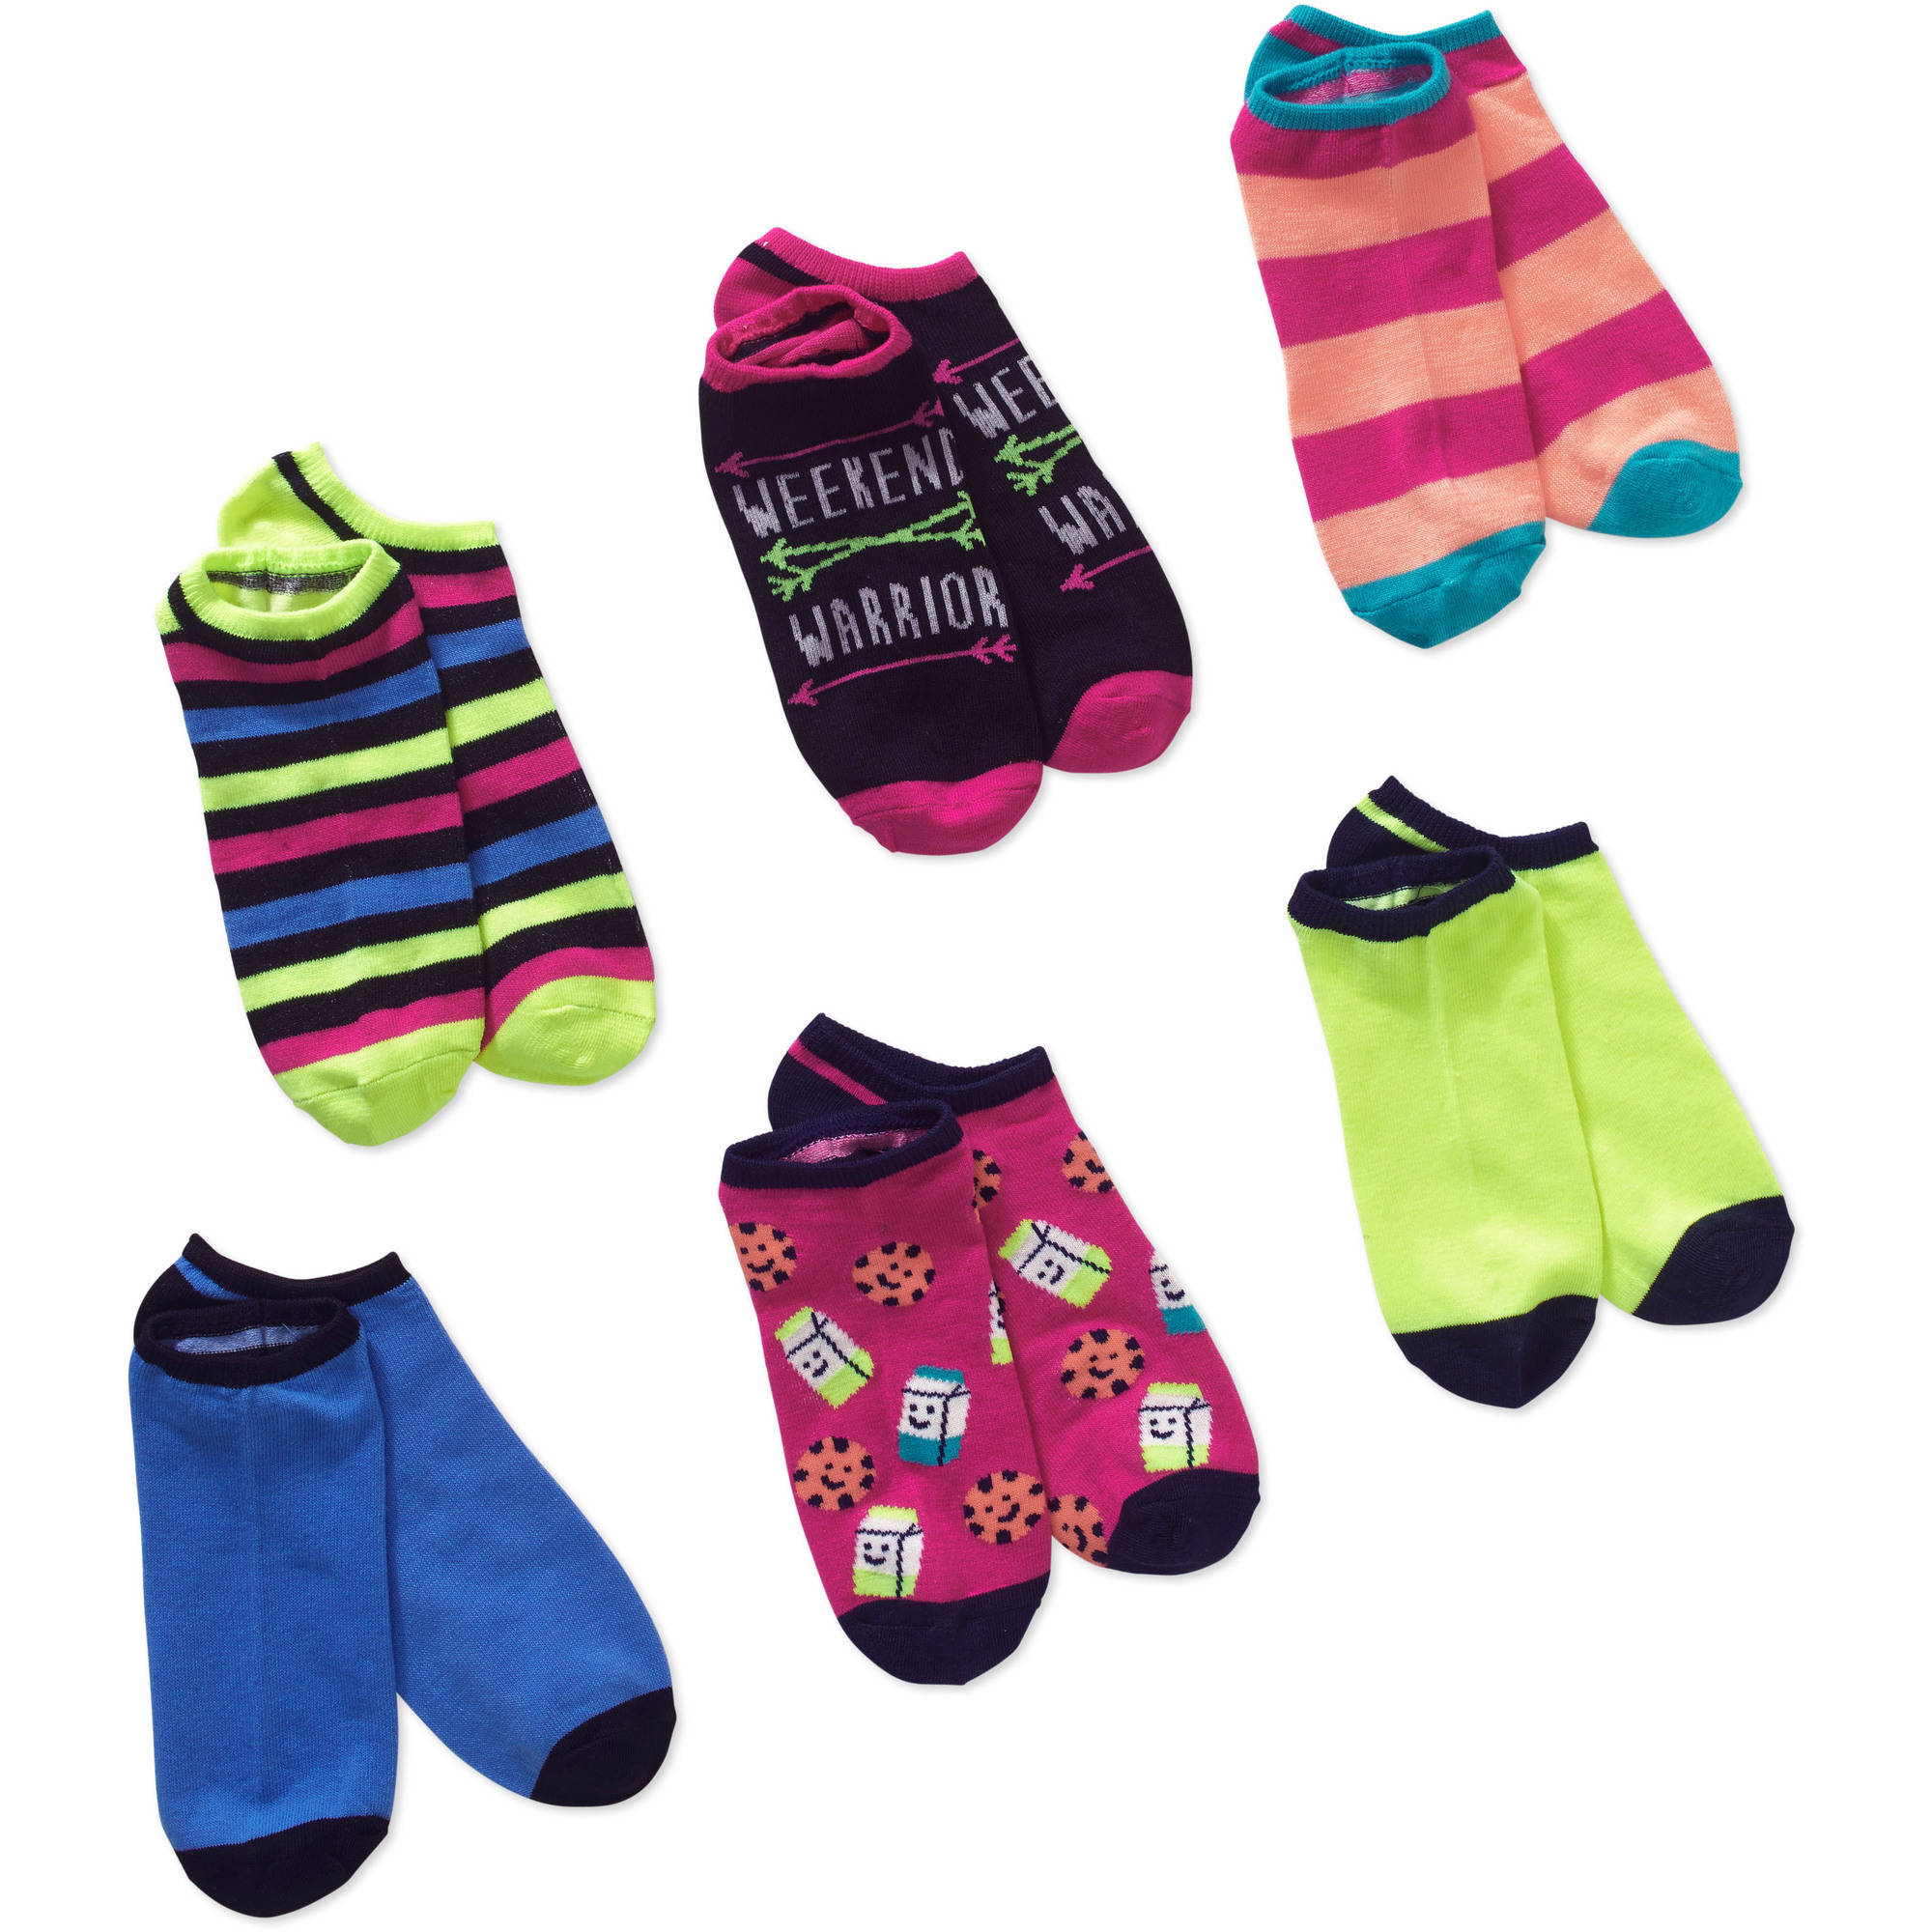 Ladies Mix and Match No Show Socks with Weekend Warrior and Milk and Cookies, 6 Pack